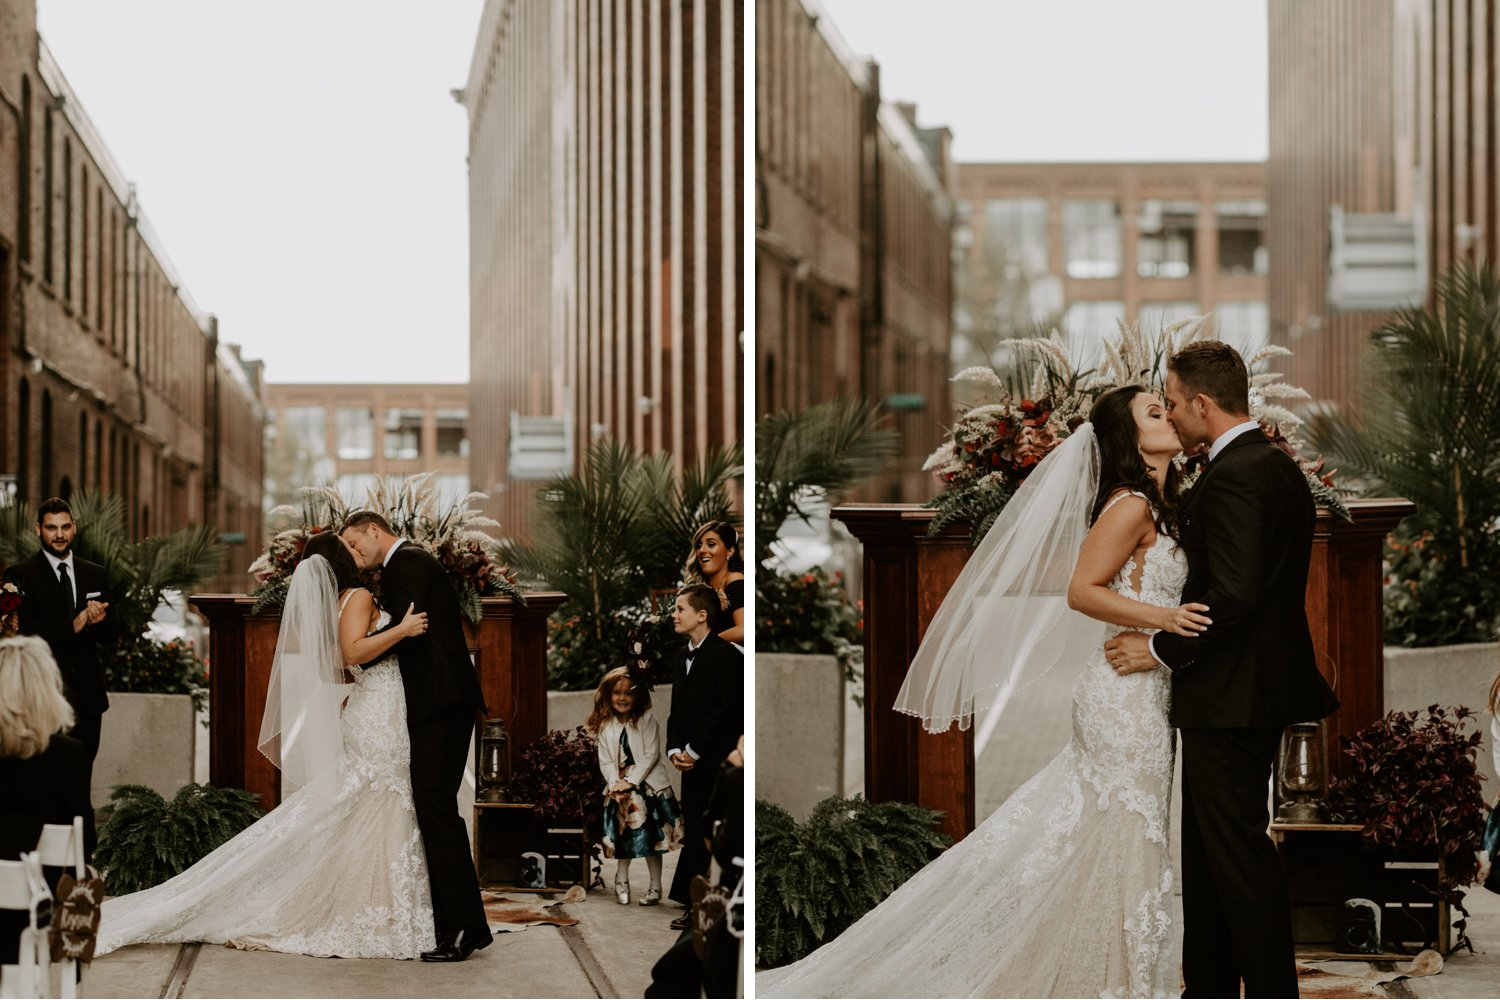 Liberty Village Wedding - first kiss as newlyweds during outdoor ceremony at Caffino